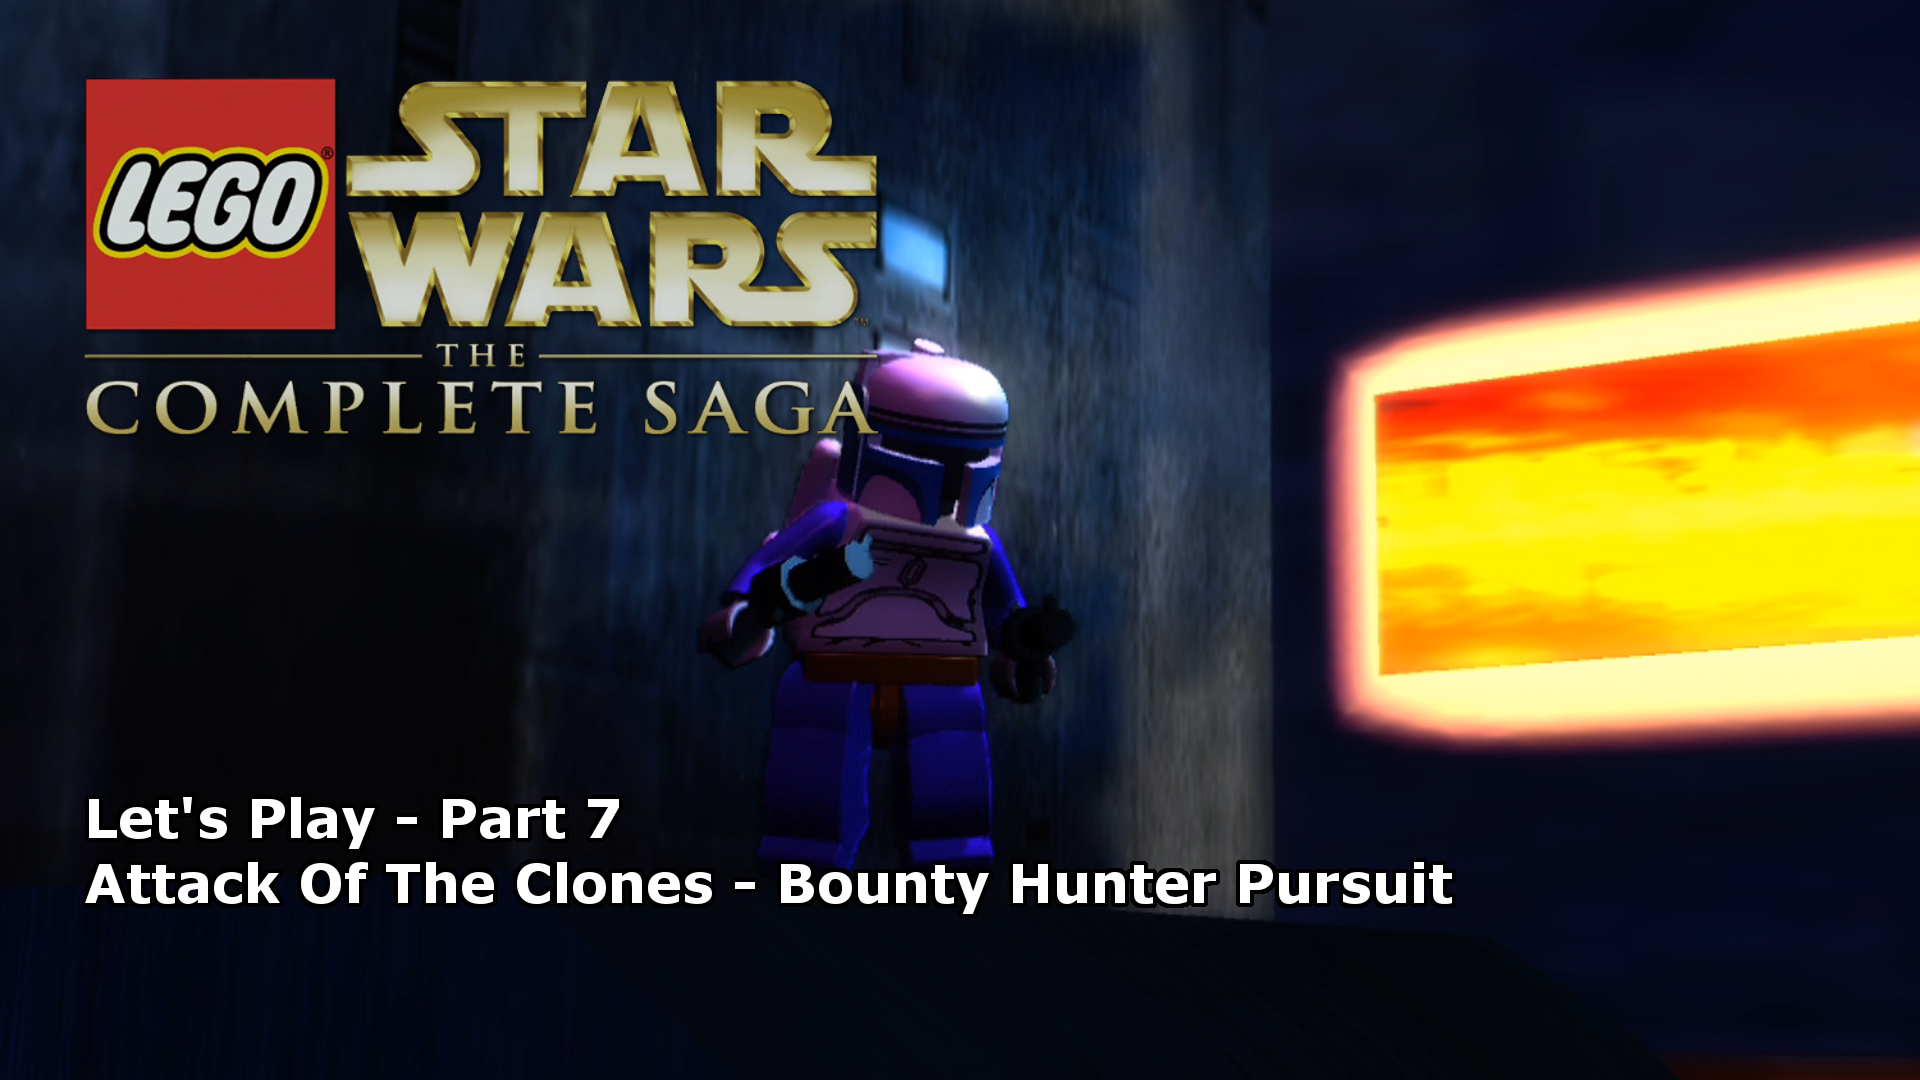 Let's Play | LEGO Star Wars: The Complete Saga 7 - Bounty Hunter Pursuit